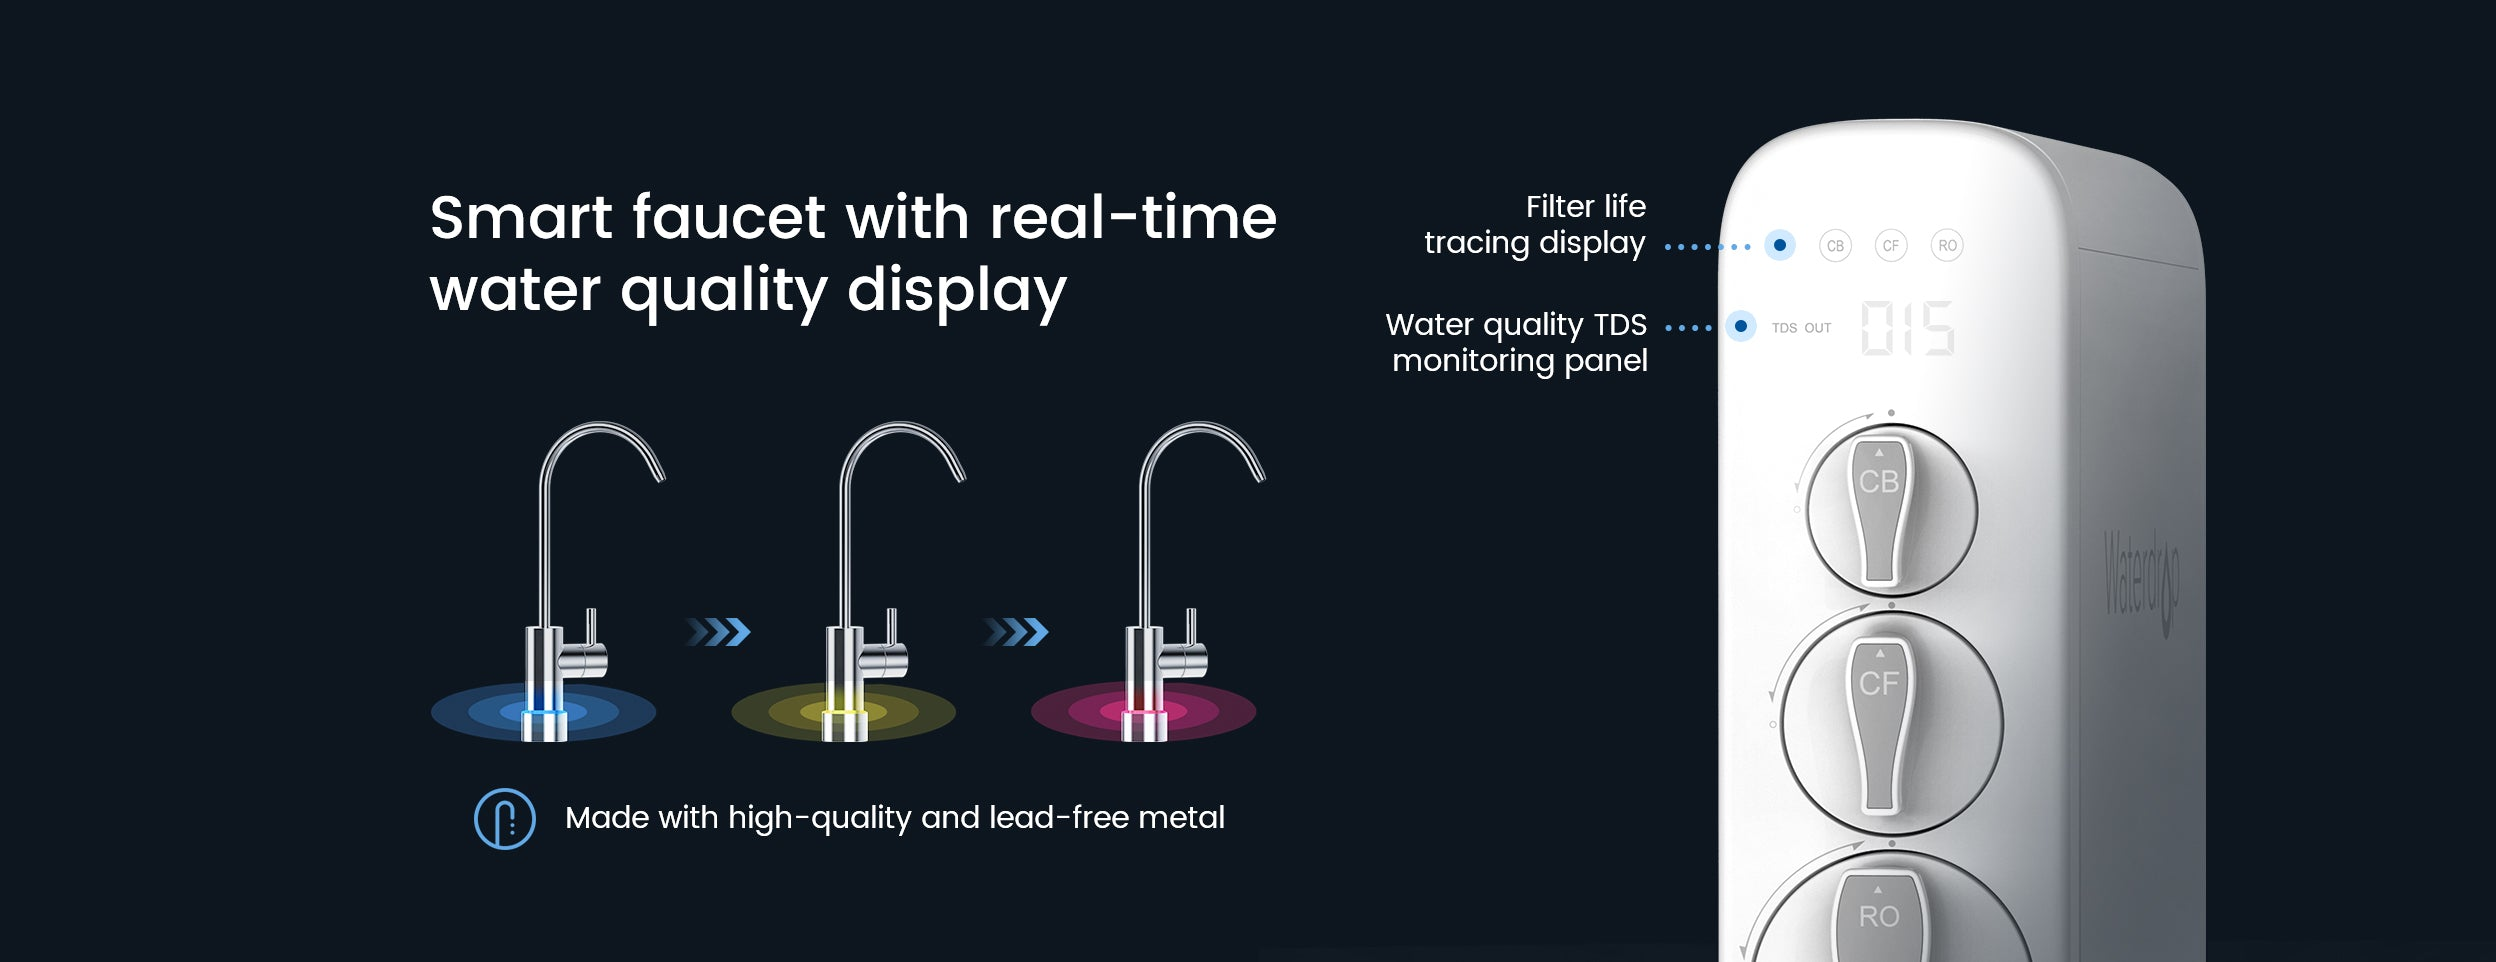 smart faucet with real-time